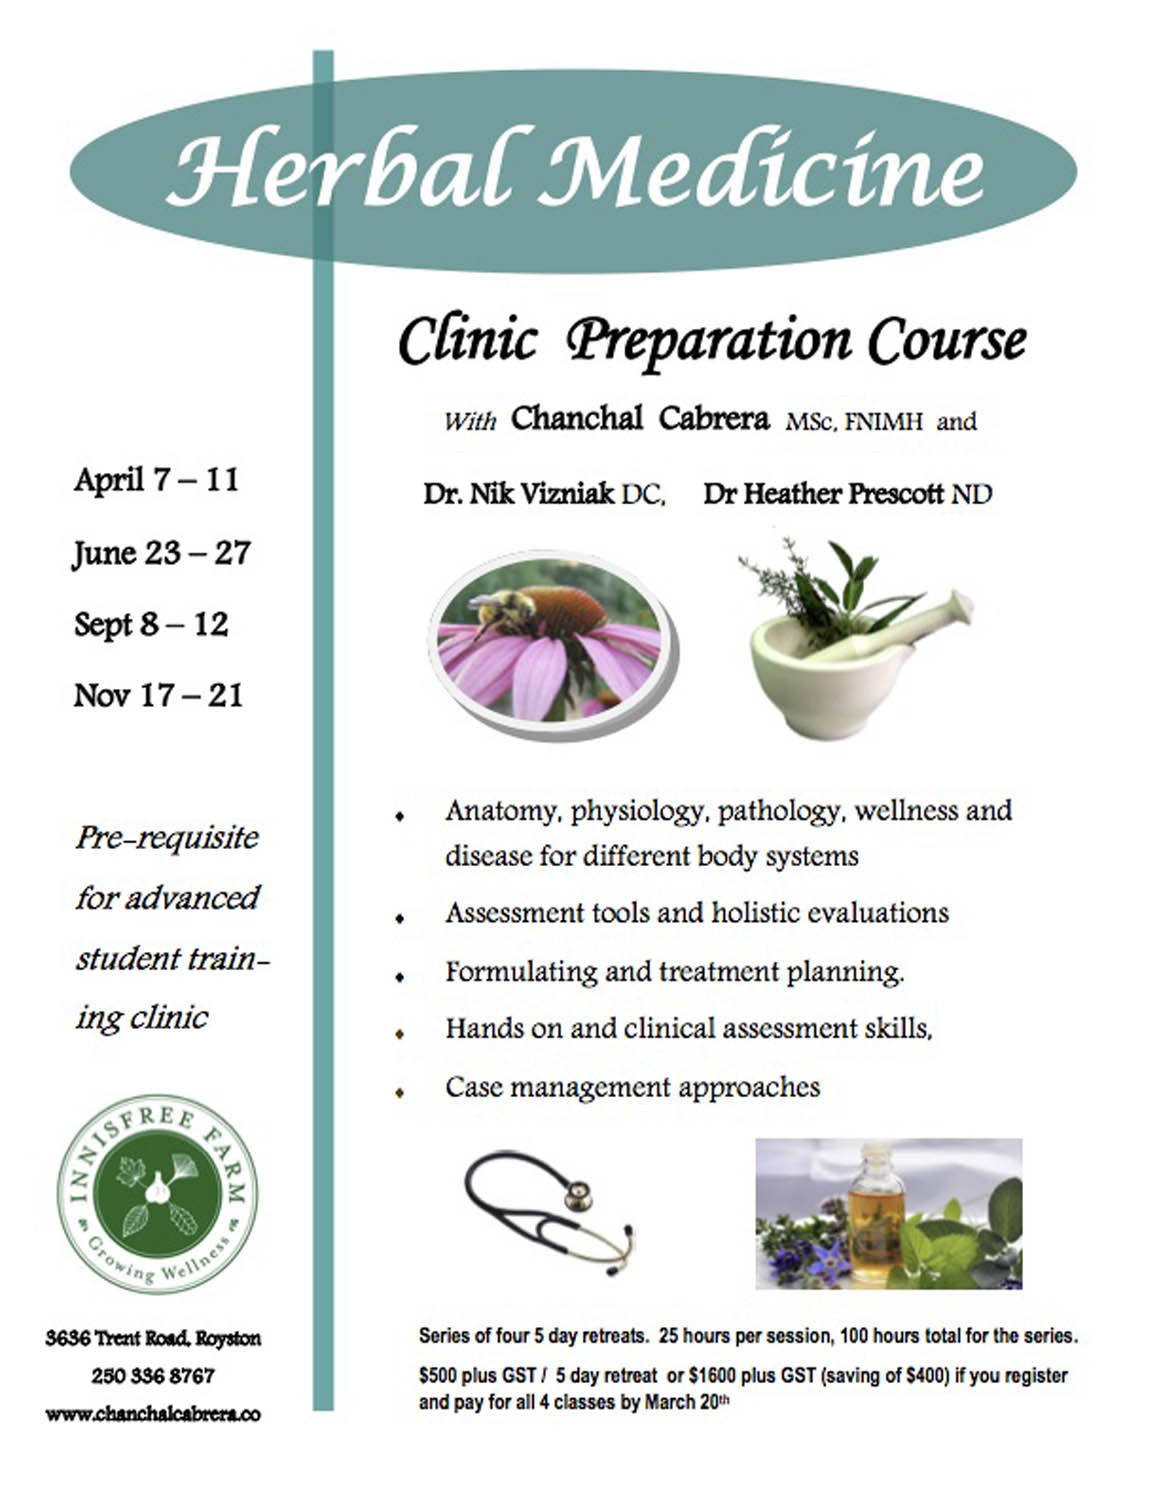 Clinic Preparation course for herbal medicine